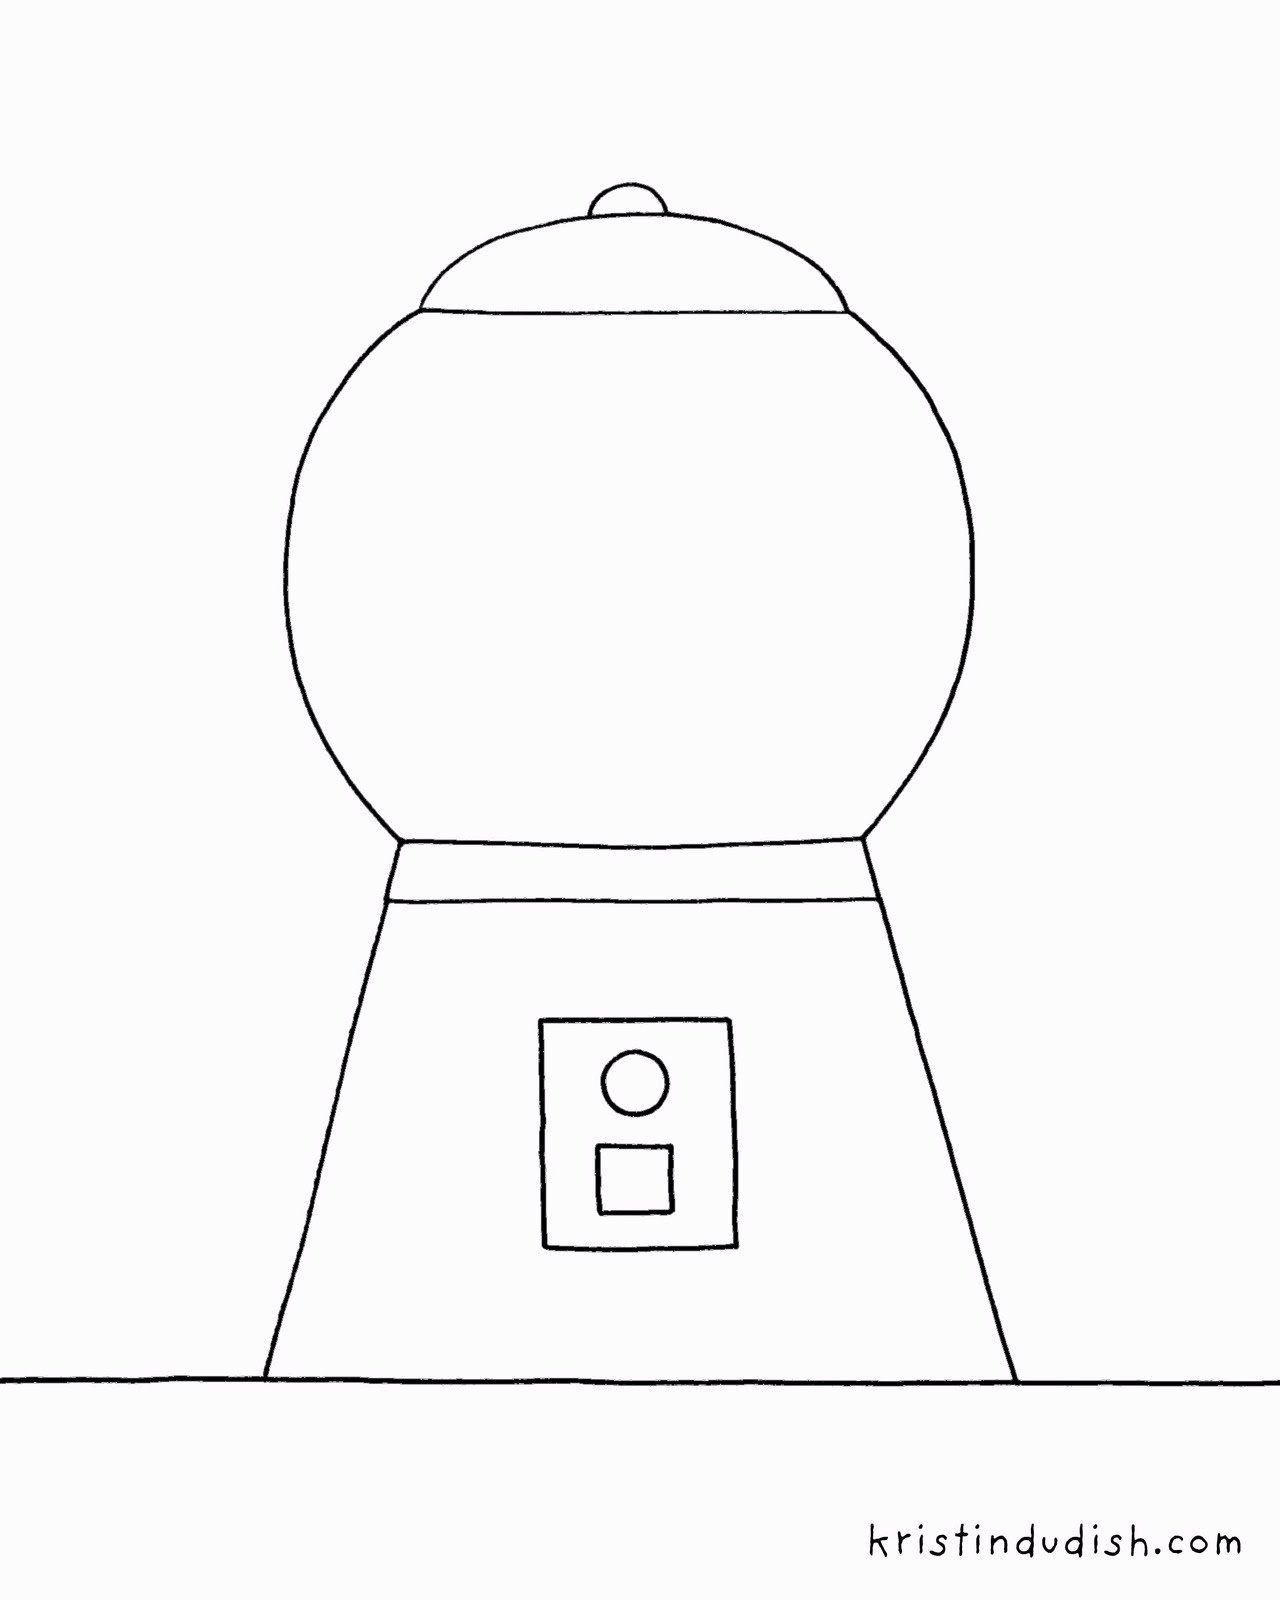 Gumball Machine Coloring Page Candy Coloring Pages Free Coloring Pages Pop Art Coloring Pages